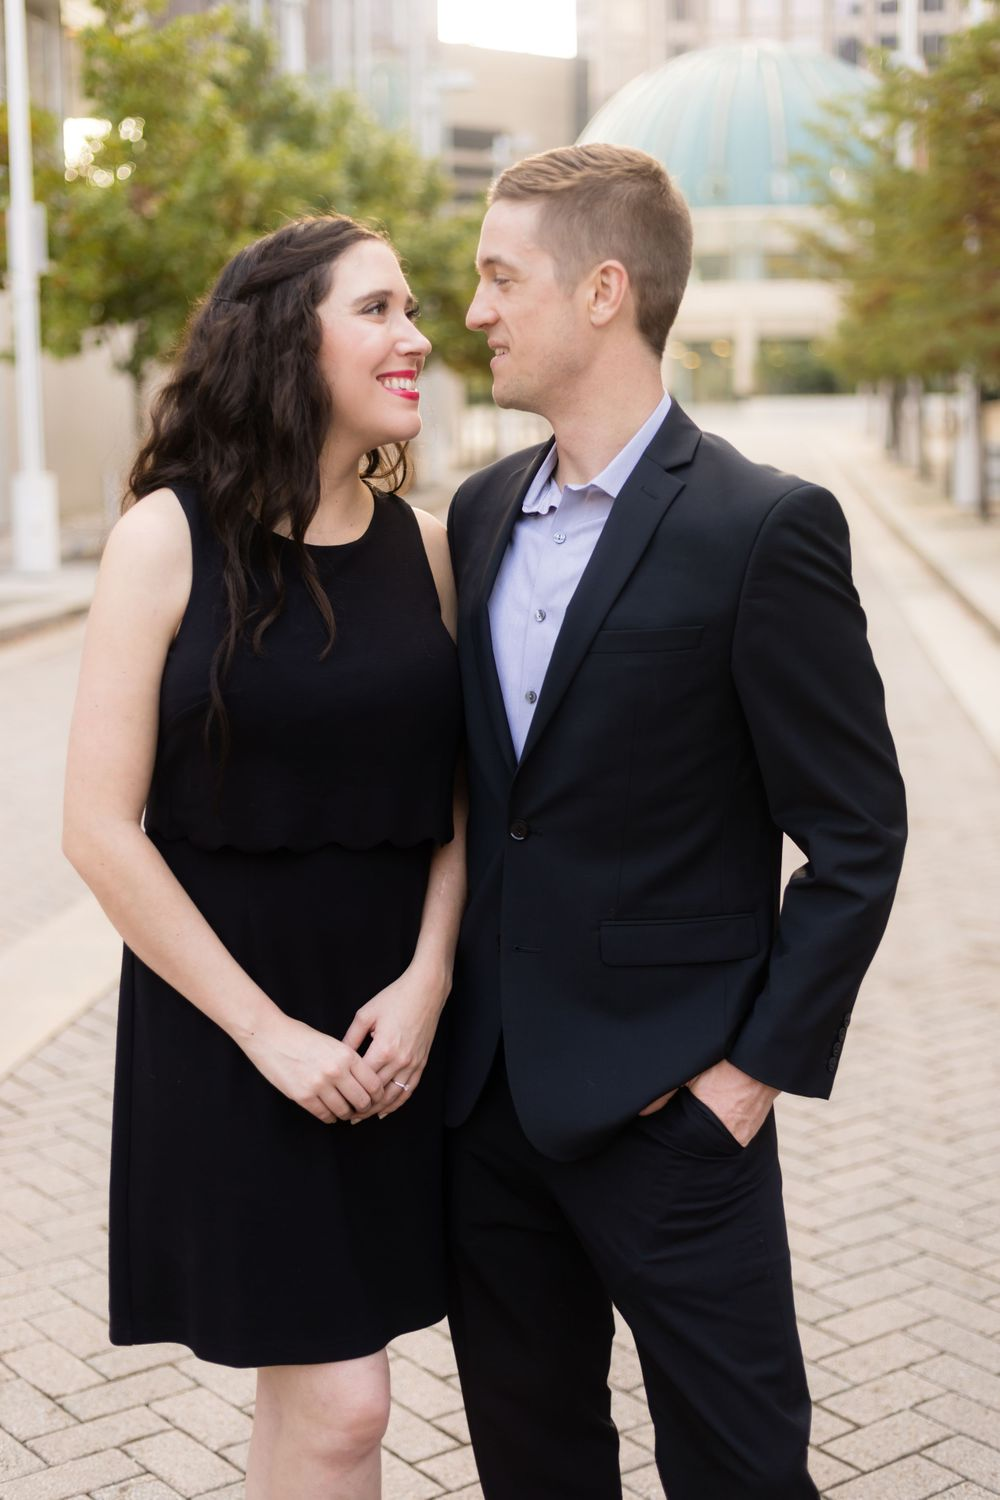 Engagement Session with city view in Dallas Arts District.